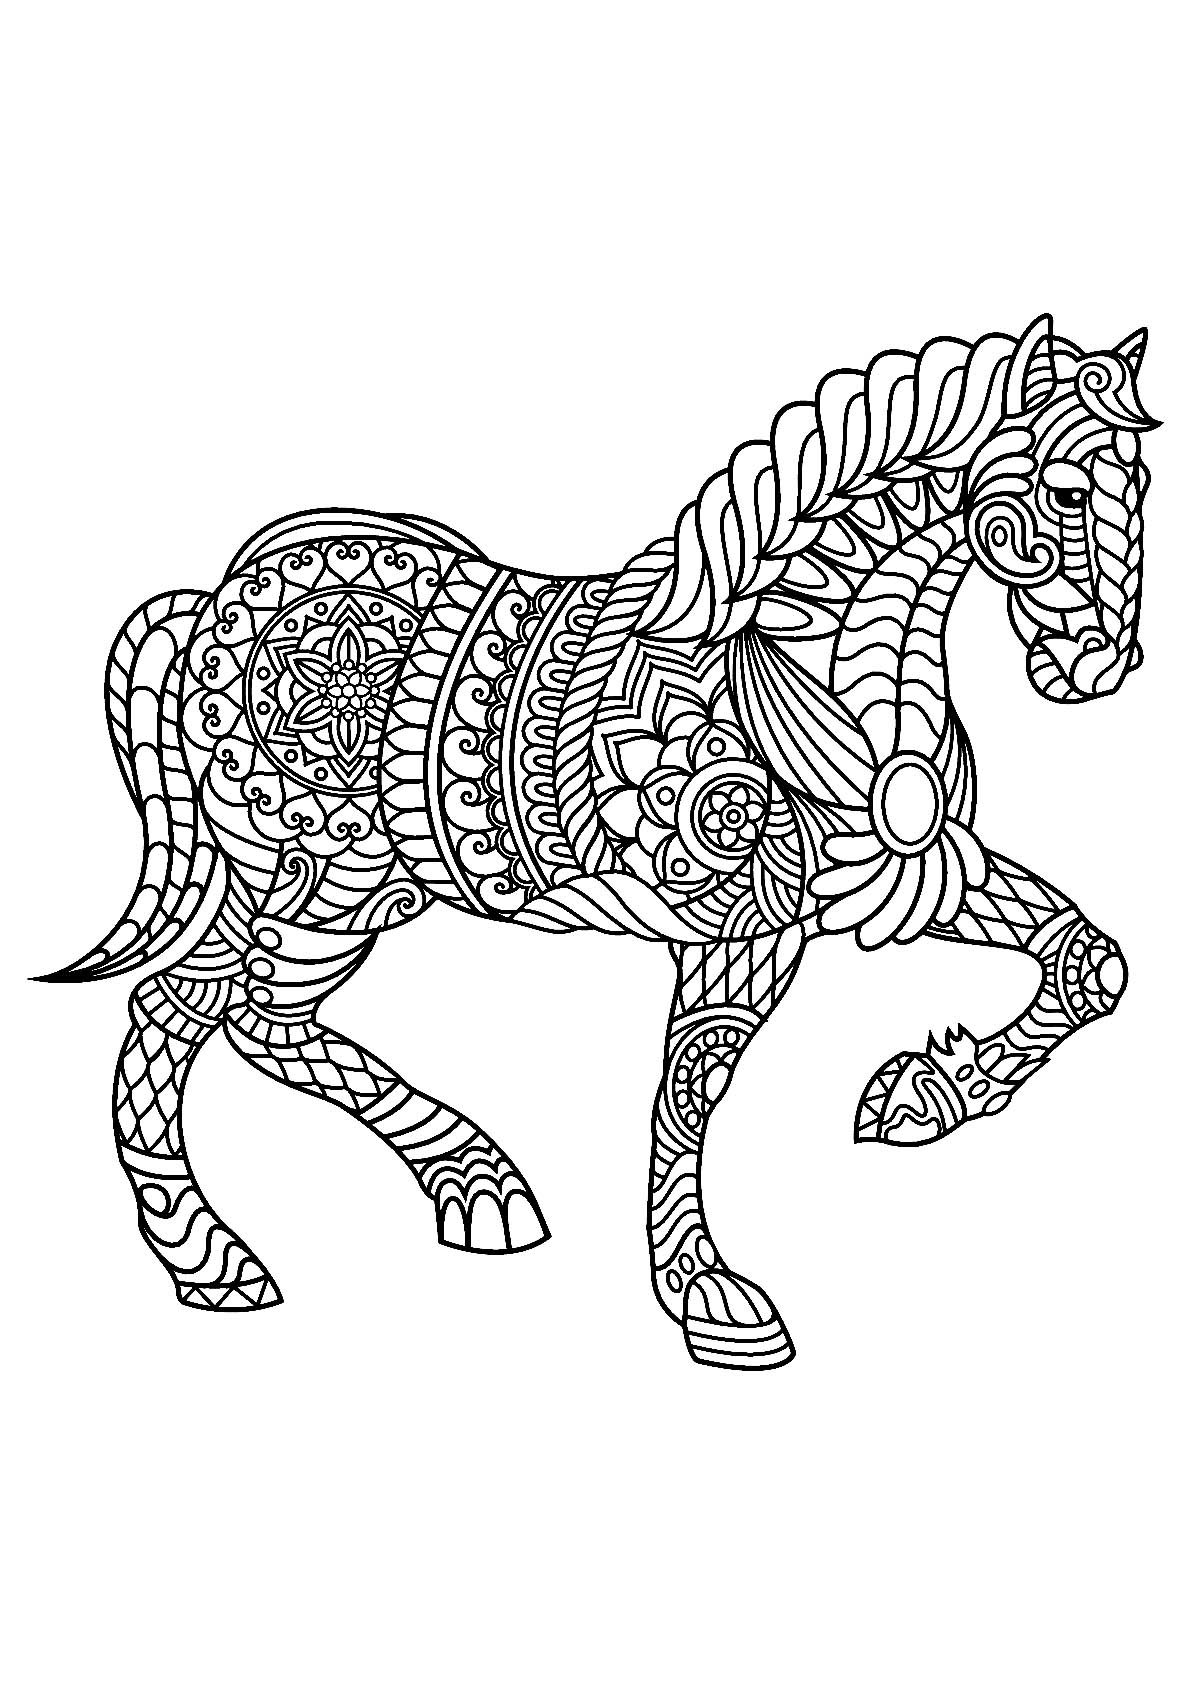 horses color pages coloring pages of horses printable free coloring sheets color pages horses 1 1